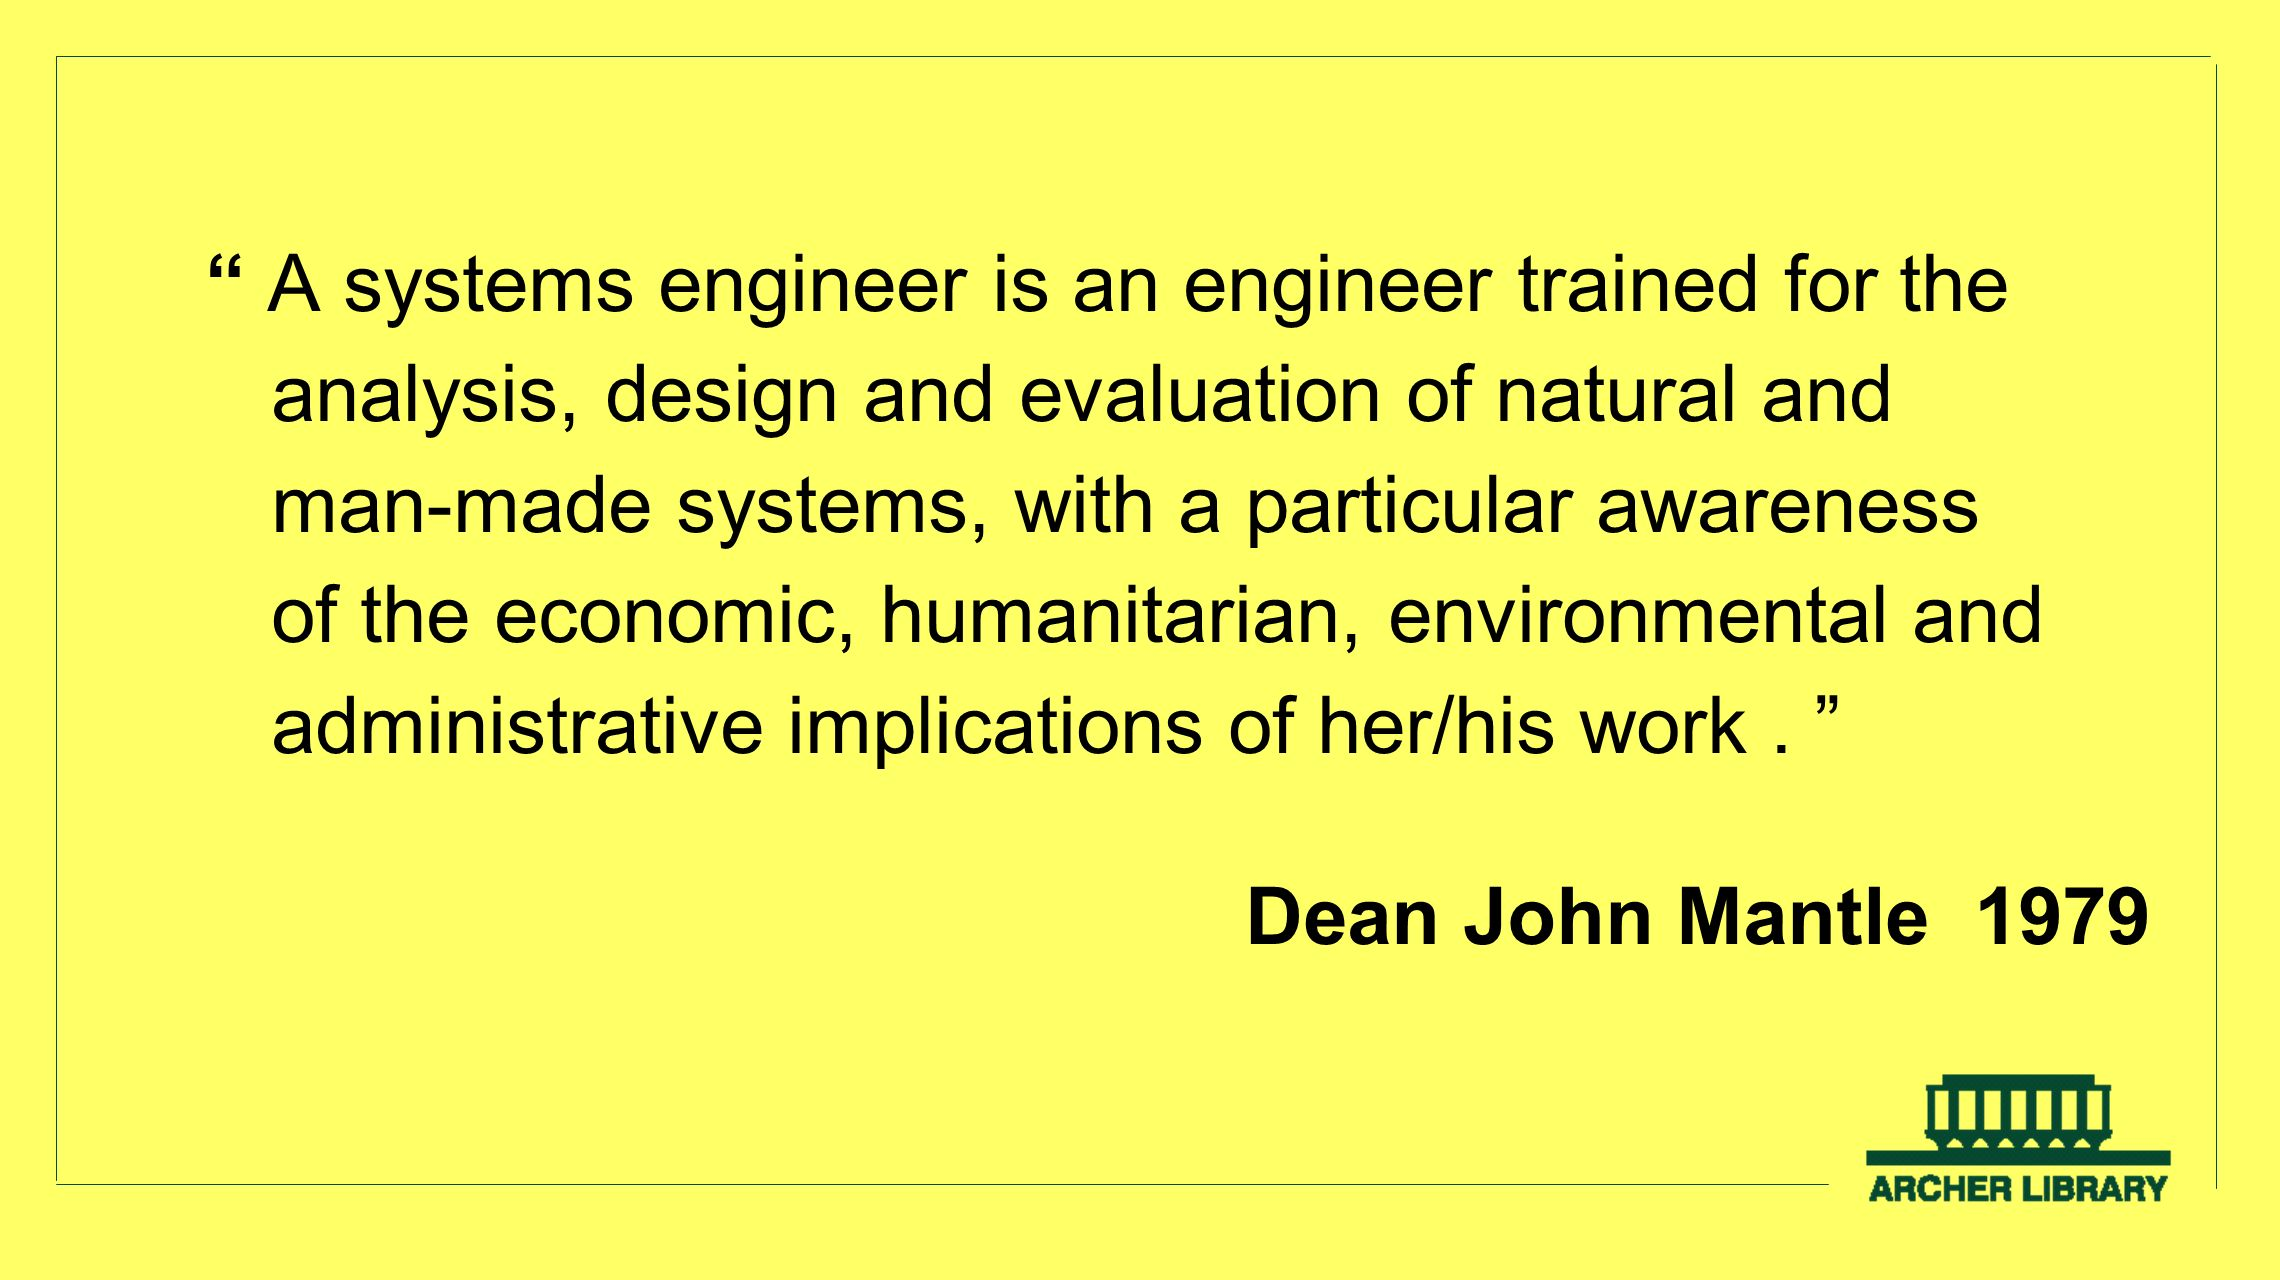 A systems engineer is an engineer trained for the analysis, design and evaluation of natural and man-made systems, with a particular awareness of the